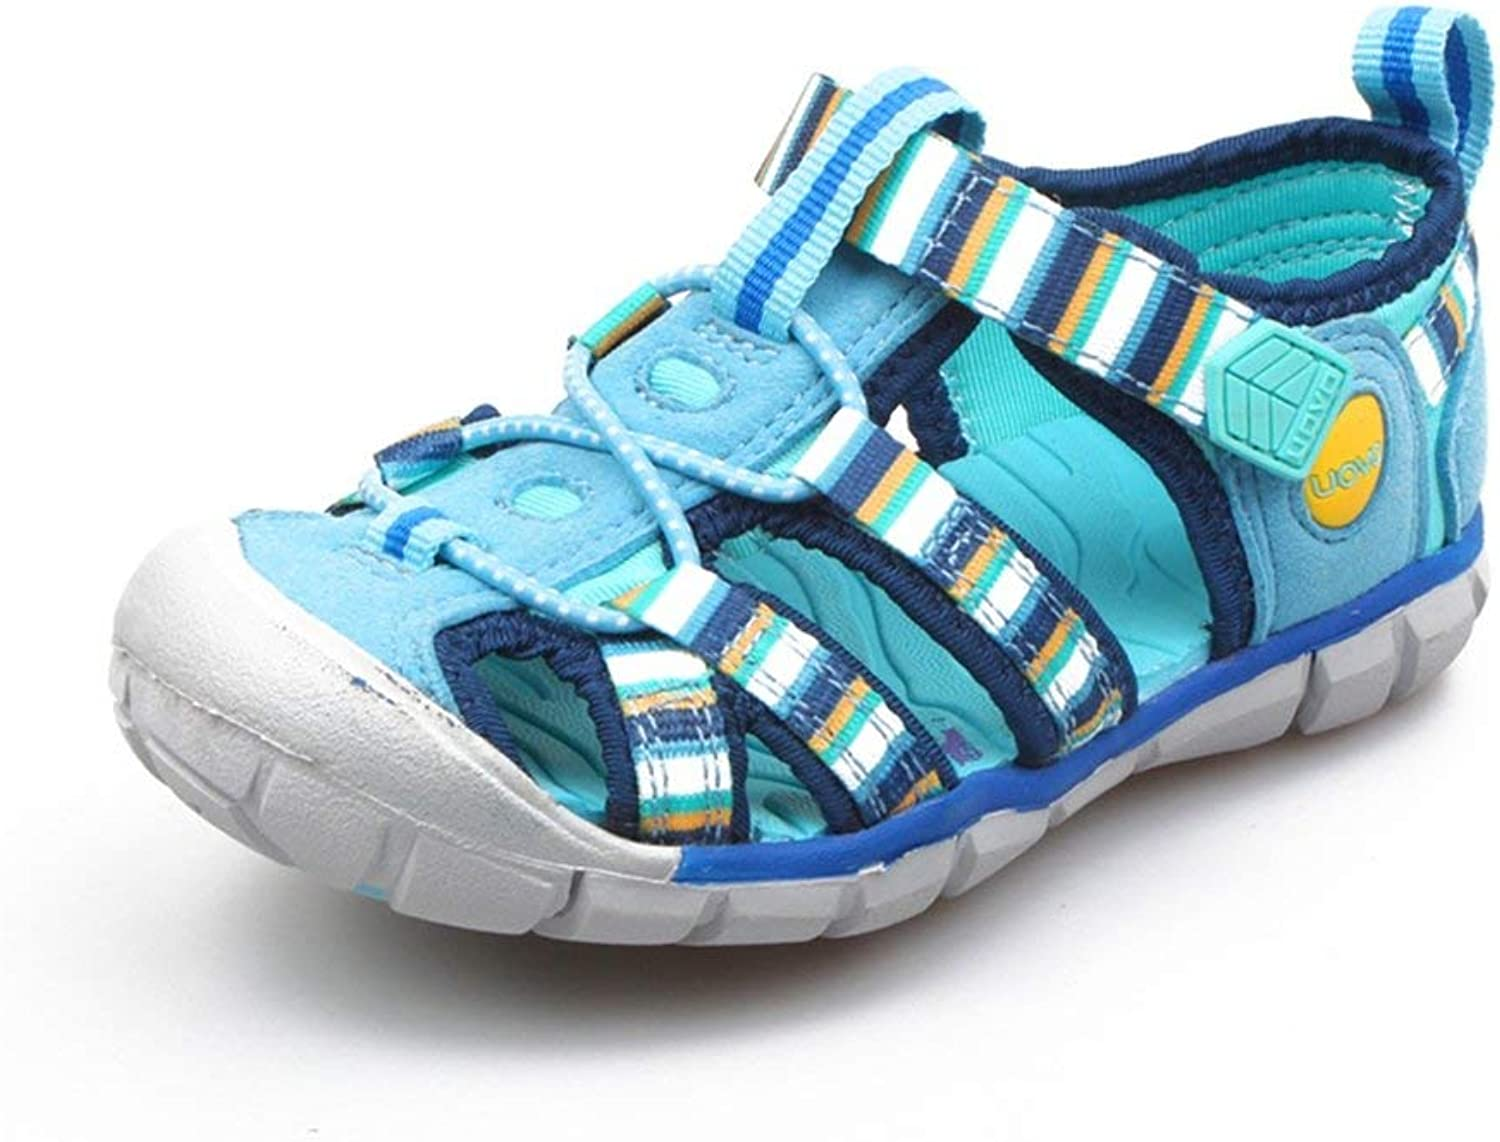 Fashion shoesbox Girls and Boys Sandals Closed Toe Strap Breathable Mesh Outdoor Athletic shoes for (Little Kid Big Kid)